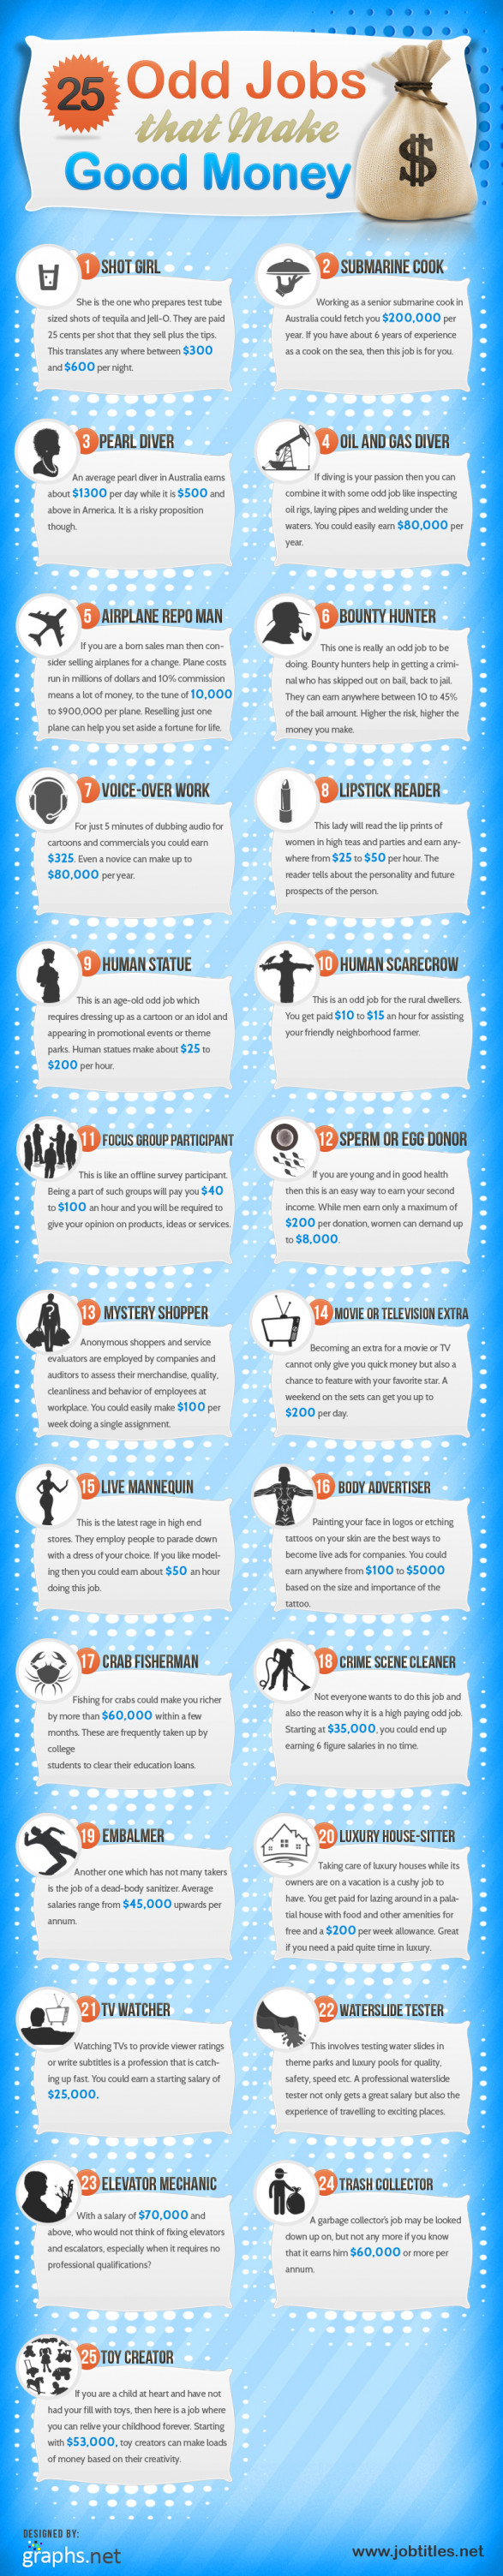 cash in on odd jobs infographic 25 odd jobs that make good money